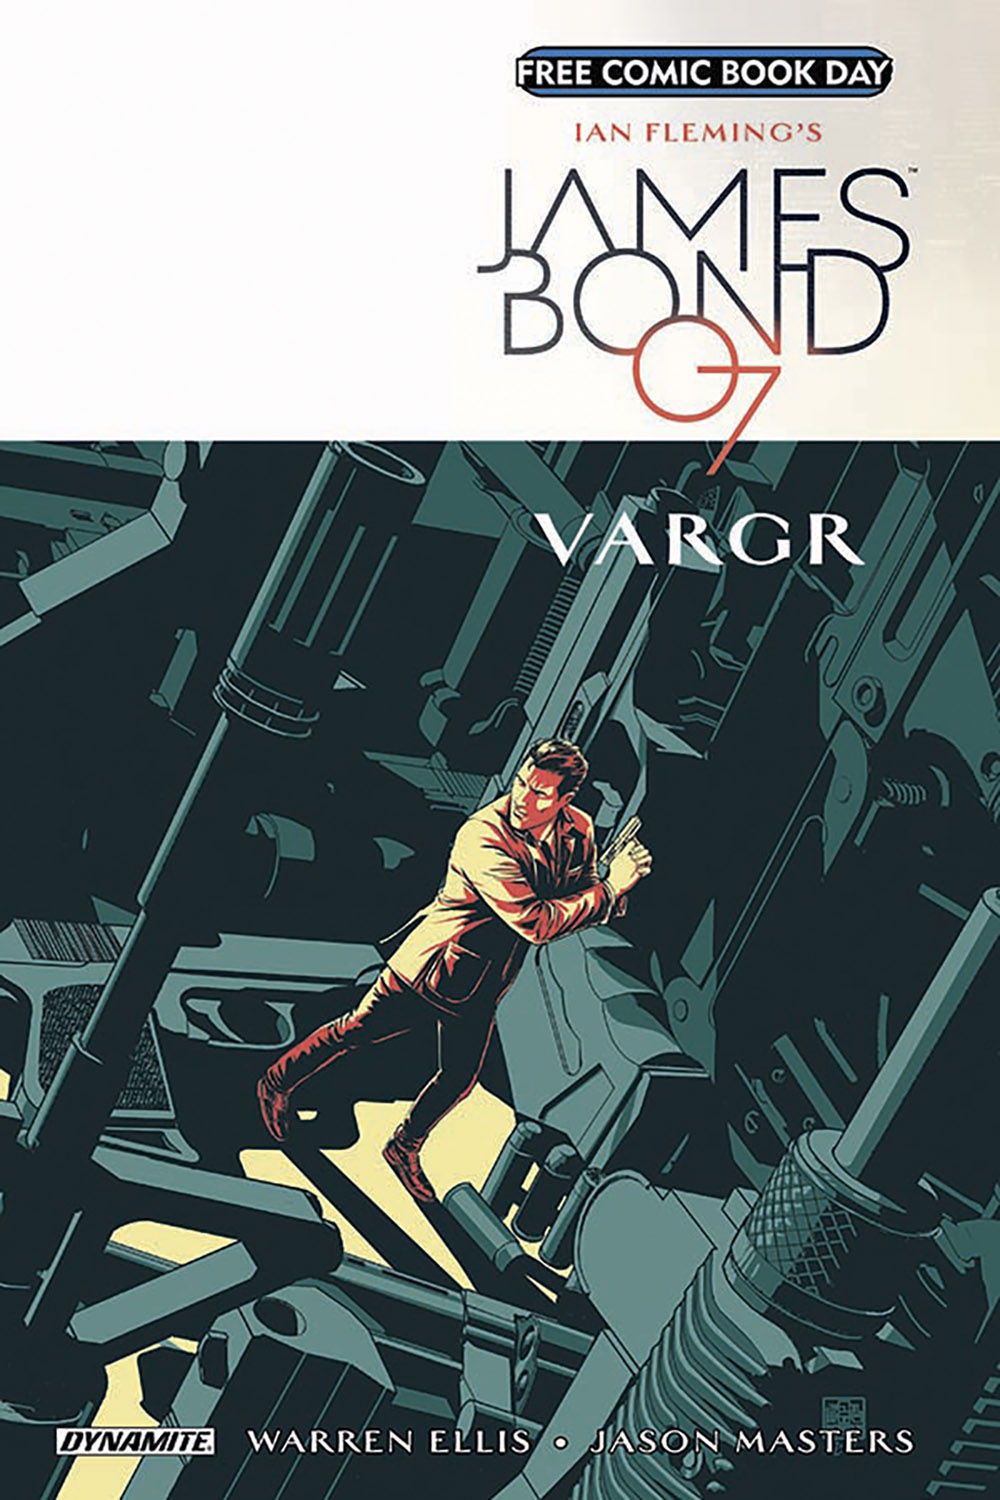 FCBD18_S_Dynamite_James Bond Vargr 1